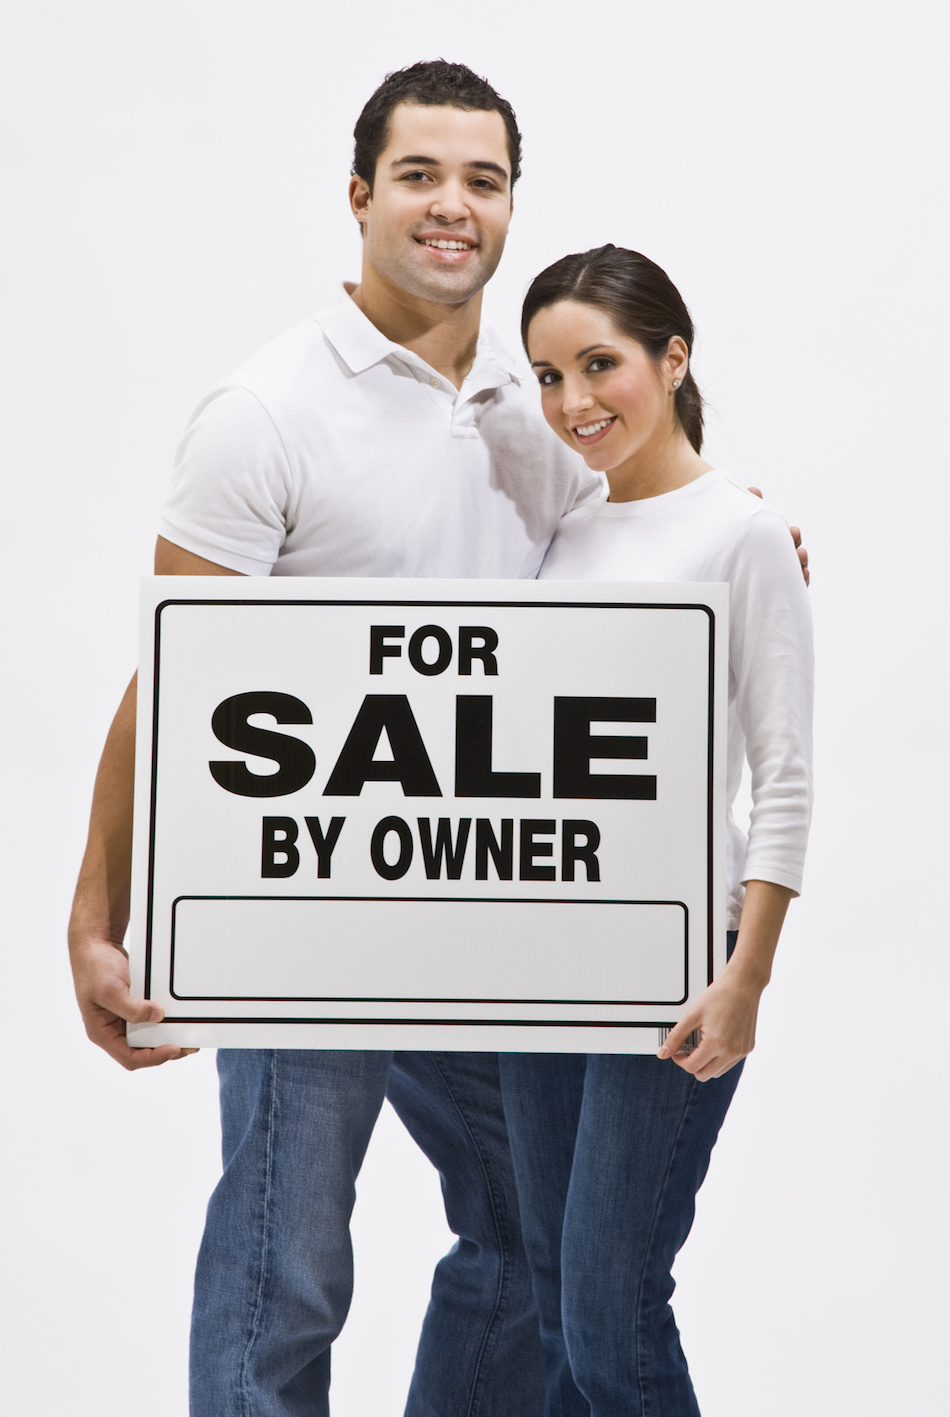 Risks of Selling a Home Without a Real Estate Agent